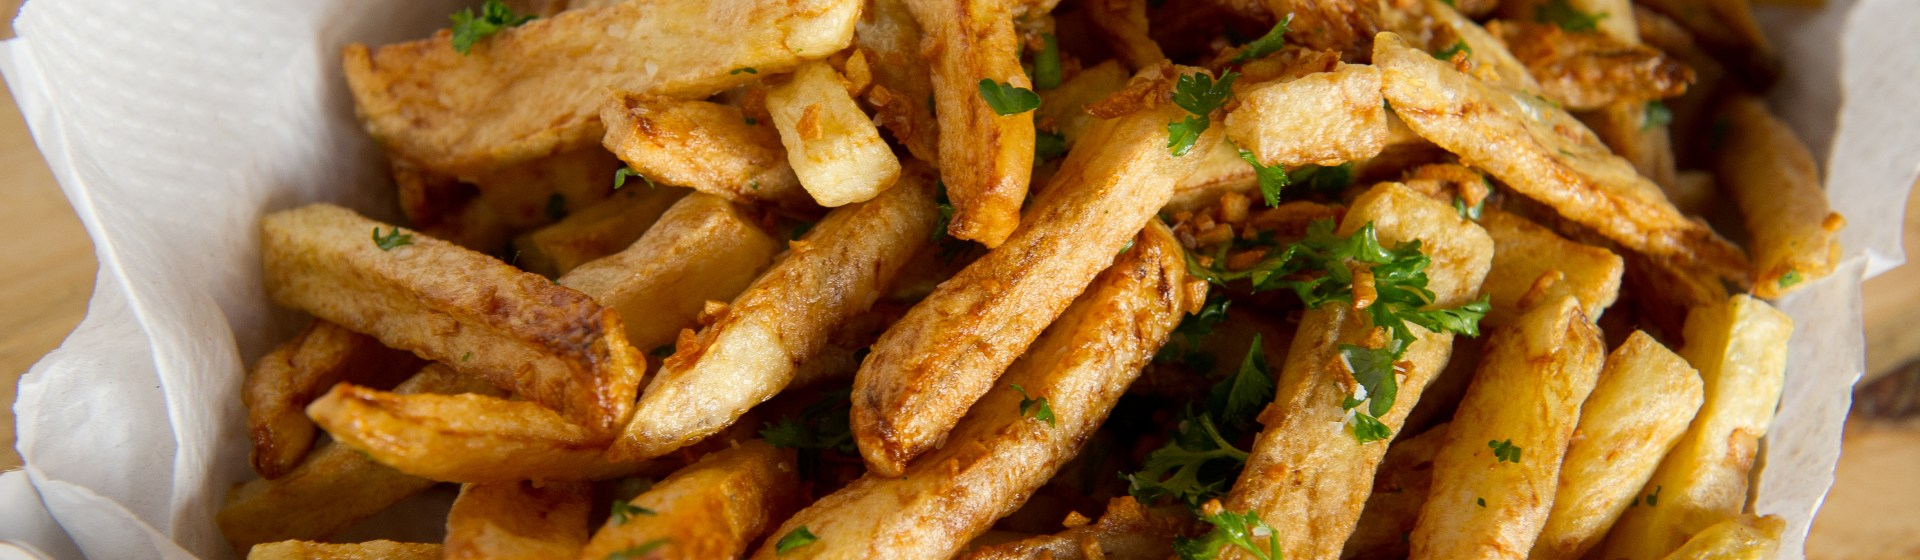 Ballpark-Style Garlic Fries Recipe